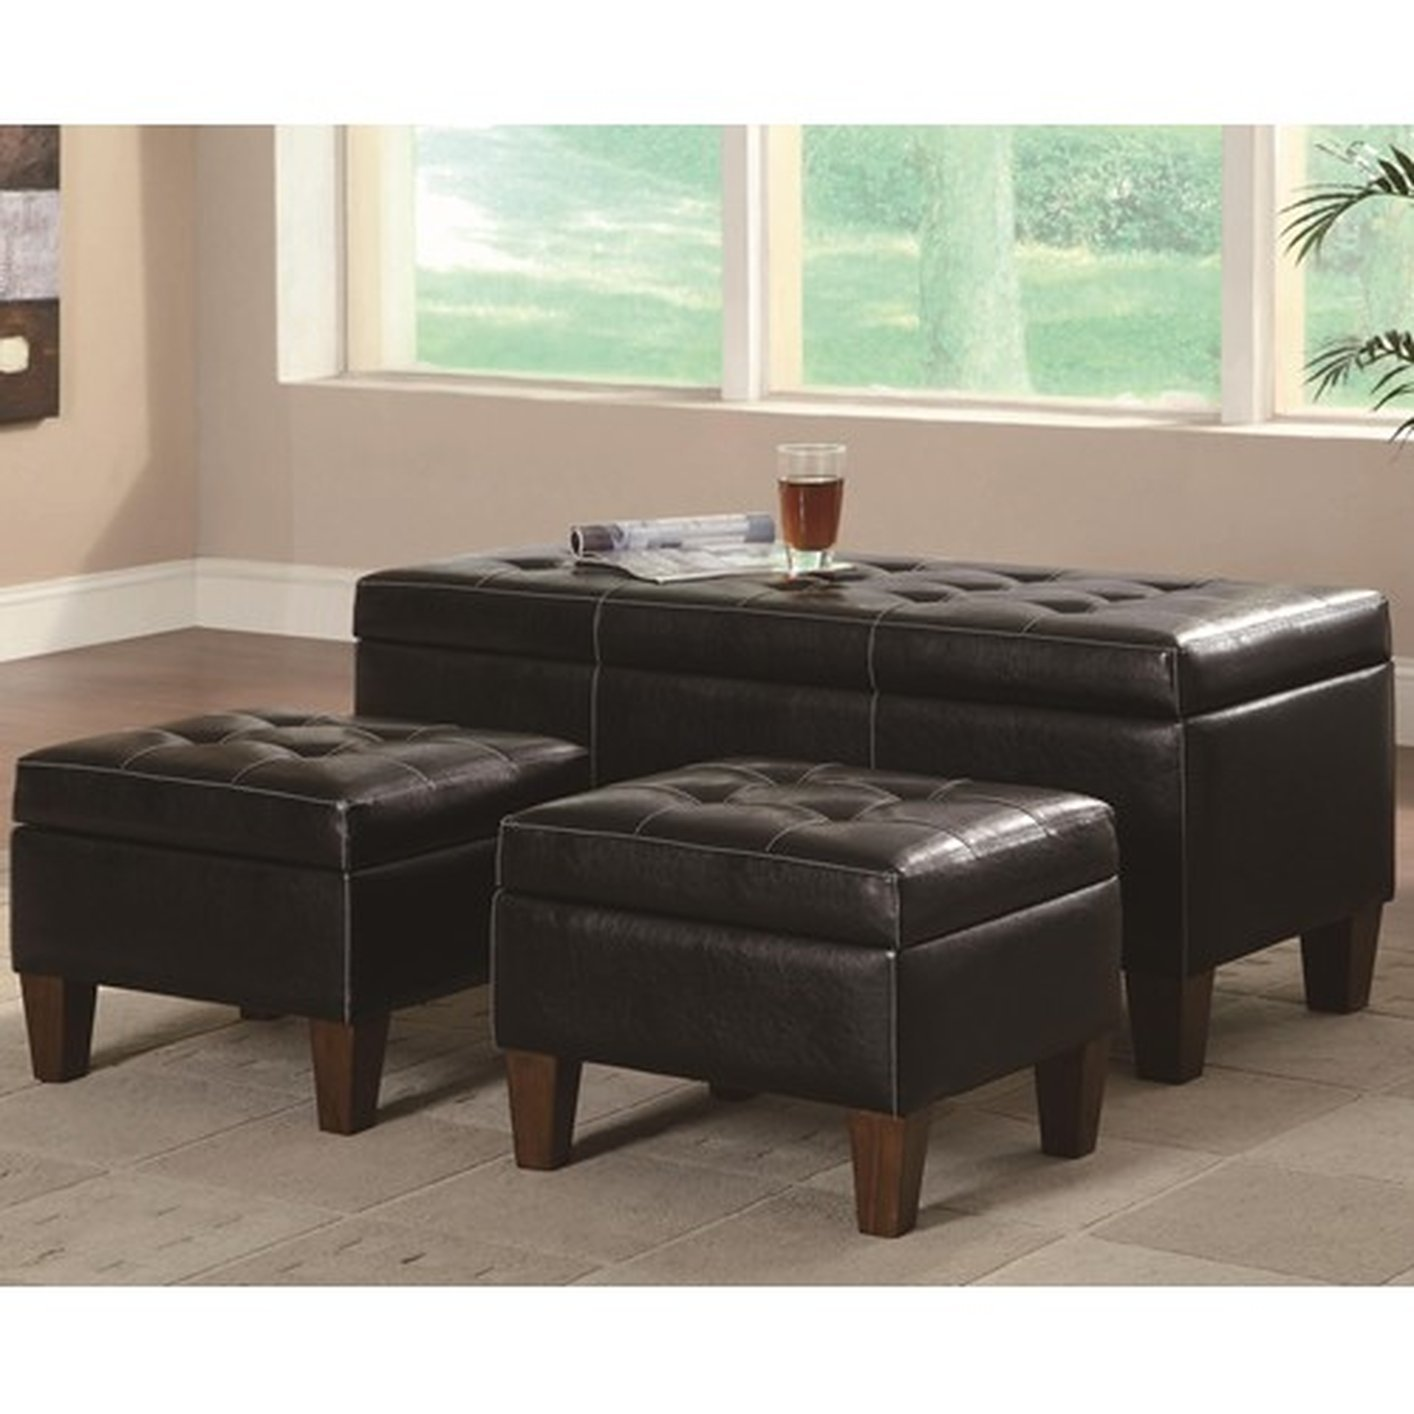 Black Leather Ottoman Set Steal A Sofa Furniture Outlet